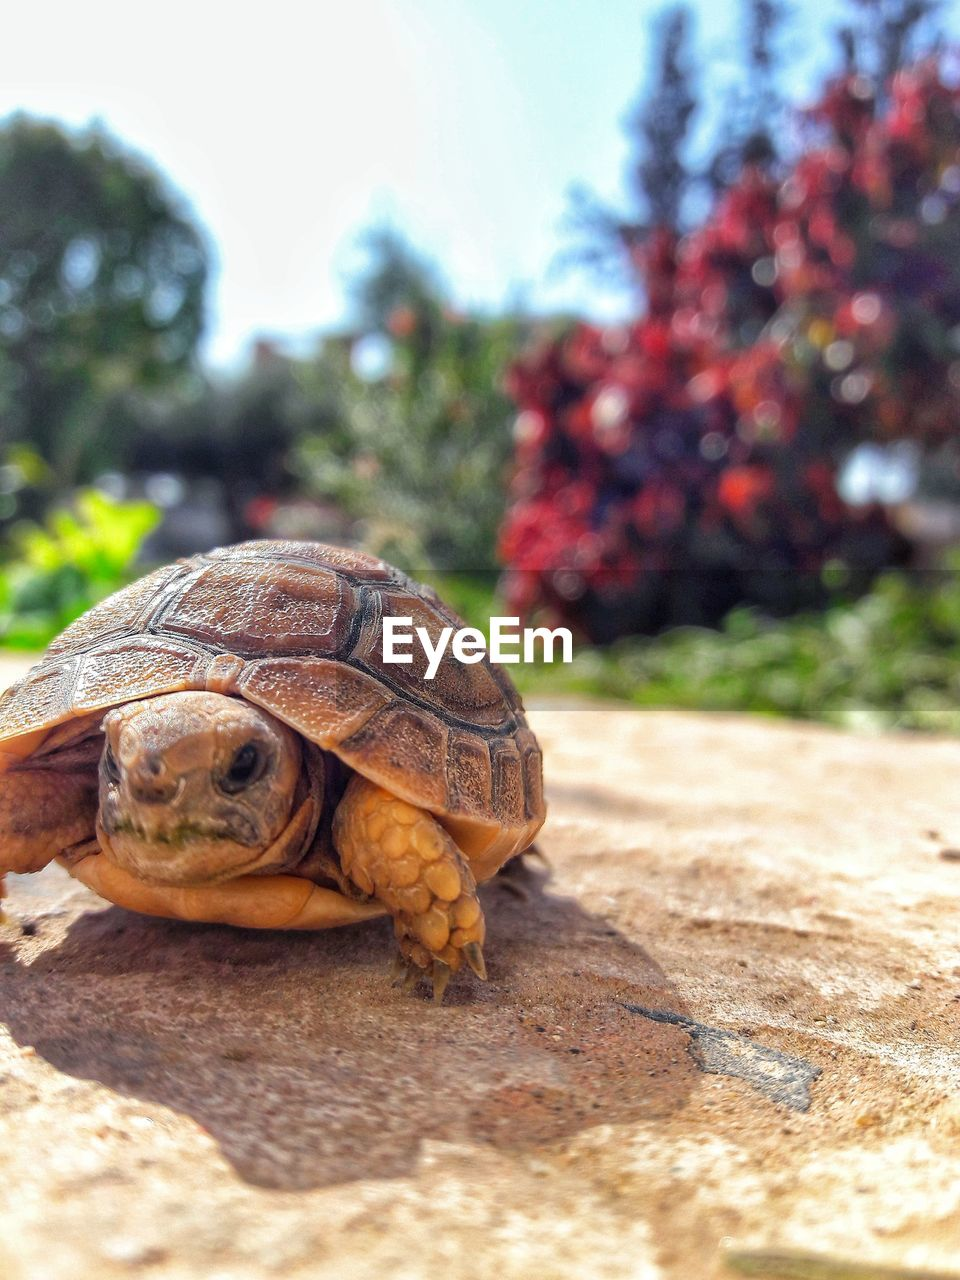 one animal, animal shell, tortoise, animals in the wild, animal themes, day, reptile, tortoise shell, outdoors, focus on foreground, nature, no people, animal wildlife, close-up